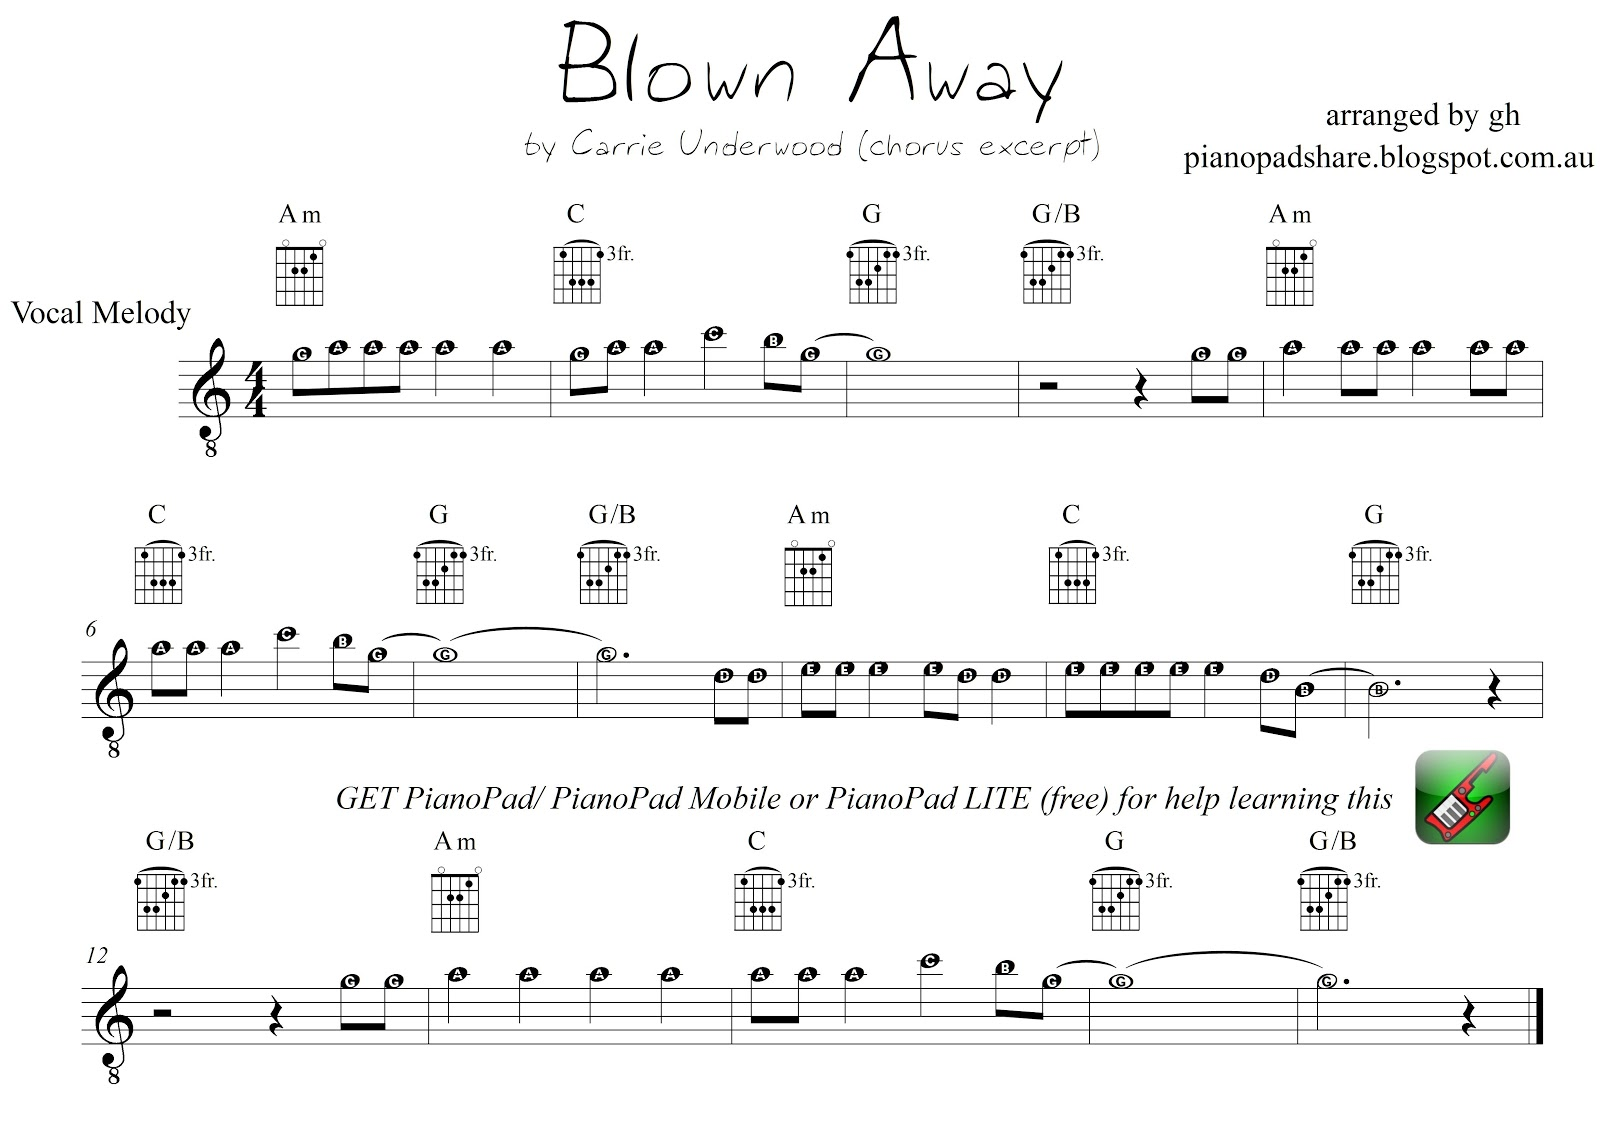 Pianopad Upload Community This Excerpt Titled Blown Away By